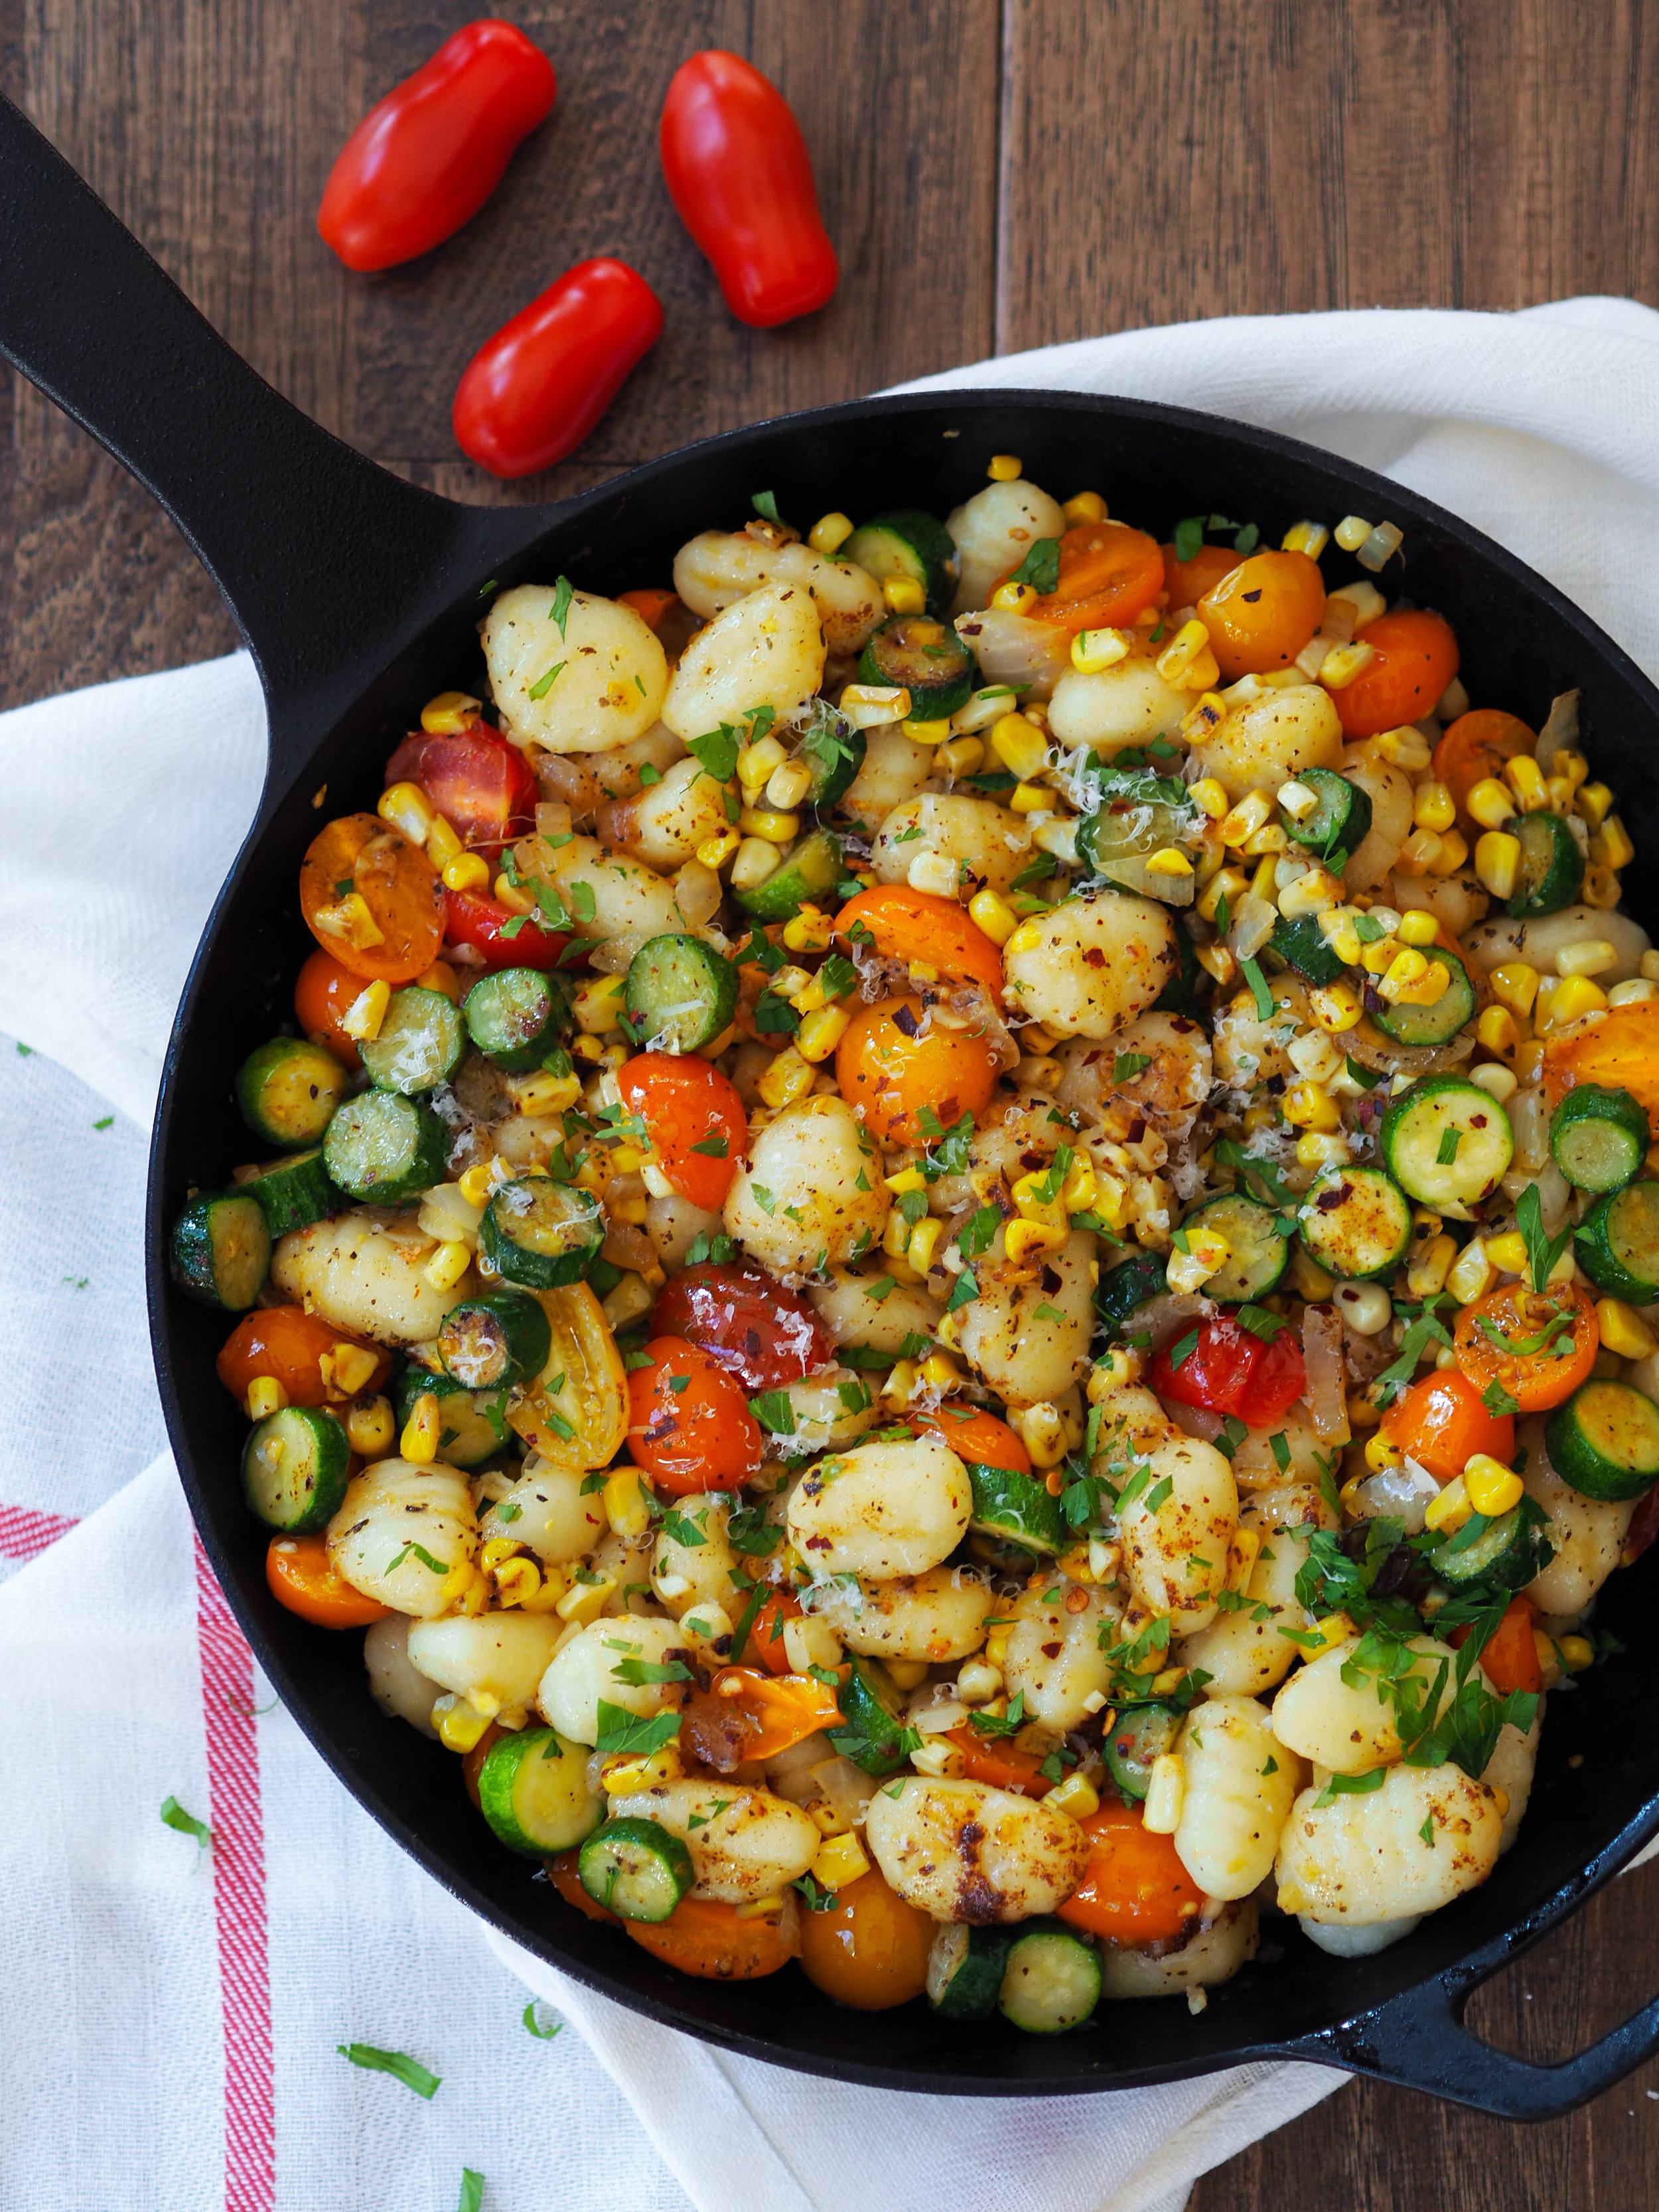 Summer Gnocchi with Basil Brown Butter with Vegetables